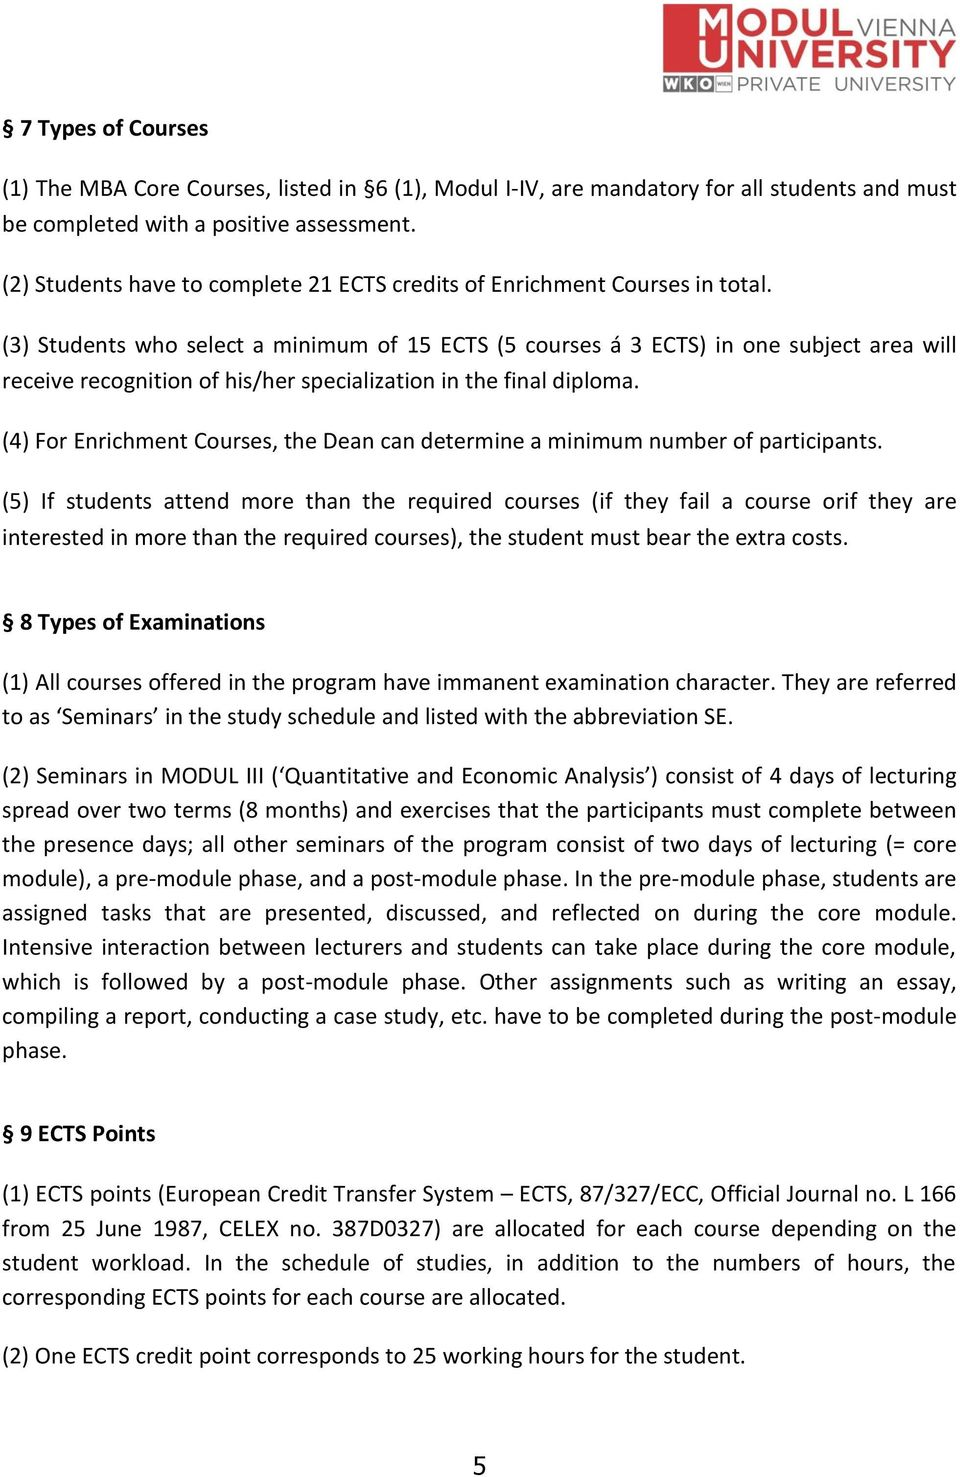 (3) Students who select a minimum of 15 ECTS (5 courses á 3 ECTS) in one subject area will receive recognition of his/her specialization in the final diploma.